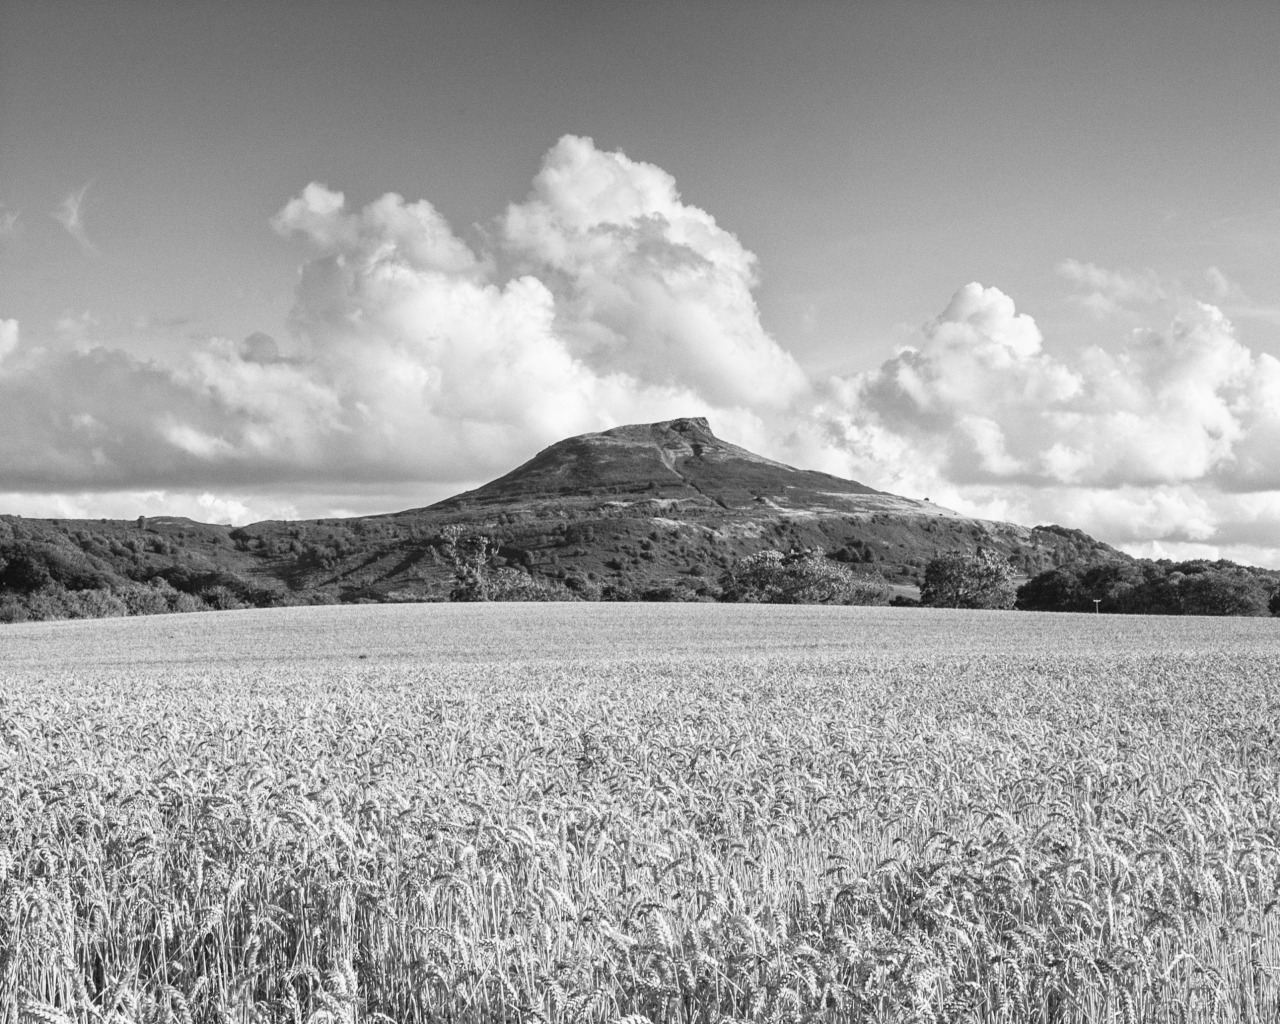 "SIGNIFICANT MOMENTS #5 Roseberry Topping, North Yorkshire UK also known as Yorkshire's Matterhorn... After my trip to Scotland I was set on buying Canon's then new EOS 5D MkIII. However, when I got to play with one I was bitterly disappointed with the quality of the build. It felt light and ""plastic-y"" and somehow it didn't feel comfortable in my hand. Now I had a dilemma; my entire kit was based on Canon stuff so if I was to change to another maker I would be spending significant money. I narrowed the field down to the 5D and Nikon's D700. As you'll know, the Nikon won out and I've not been disappointed at all. What a camera! It took me a little while to get my head around everything and even now I'm sure I'm only using it at a fraction of its capacity. The kit lens that came with the D700 was OK but not brilliant so I invested in the Nikkor 24-70 ƒ2.8G ED lens, which I use in almost all my landscape work. This is the first image I was truly satisfied with using the new pro kit. It's Roseberry Topping near Great Ayton in North Yorkshire and just seems to suit black and white on a warm summer afternoon."